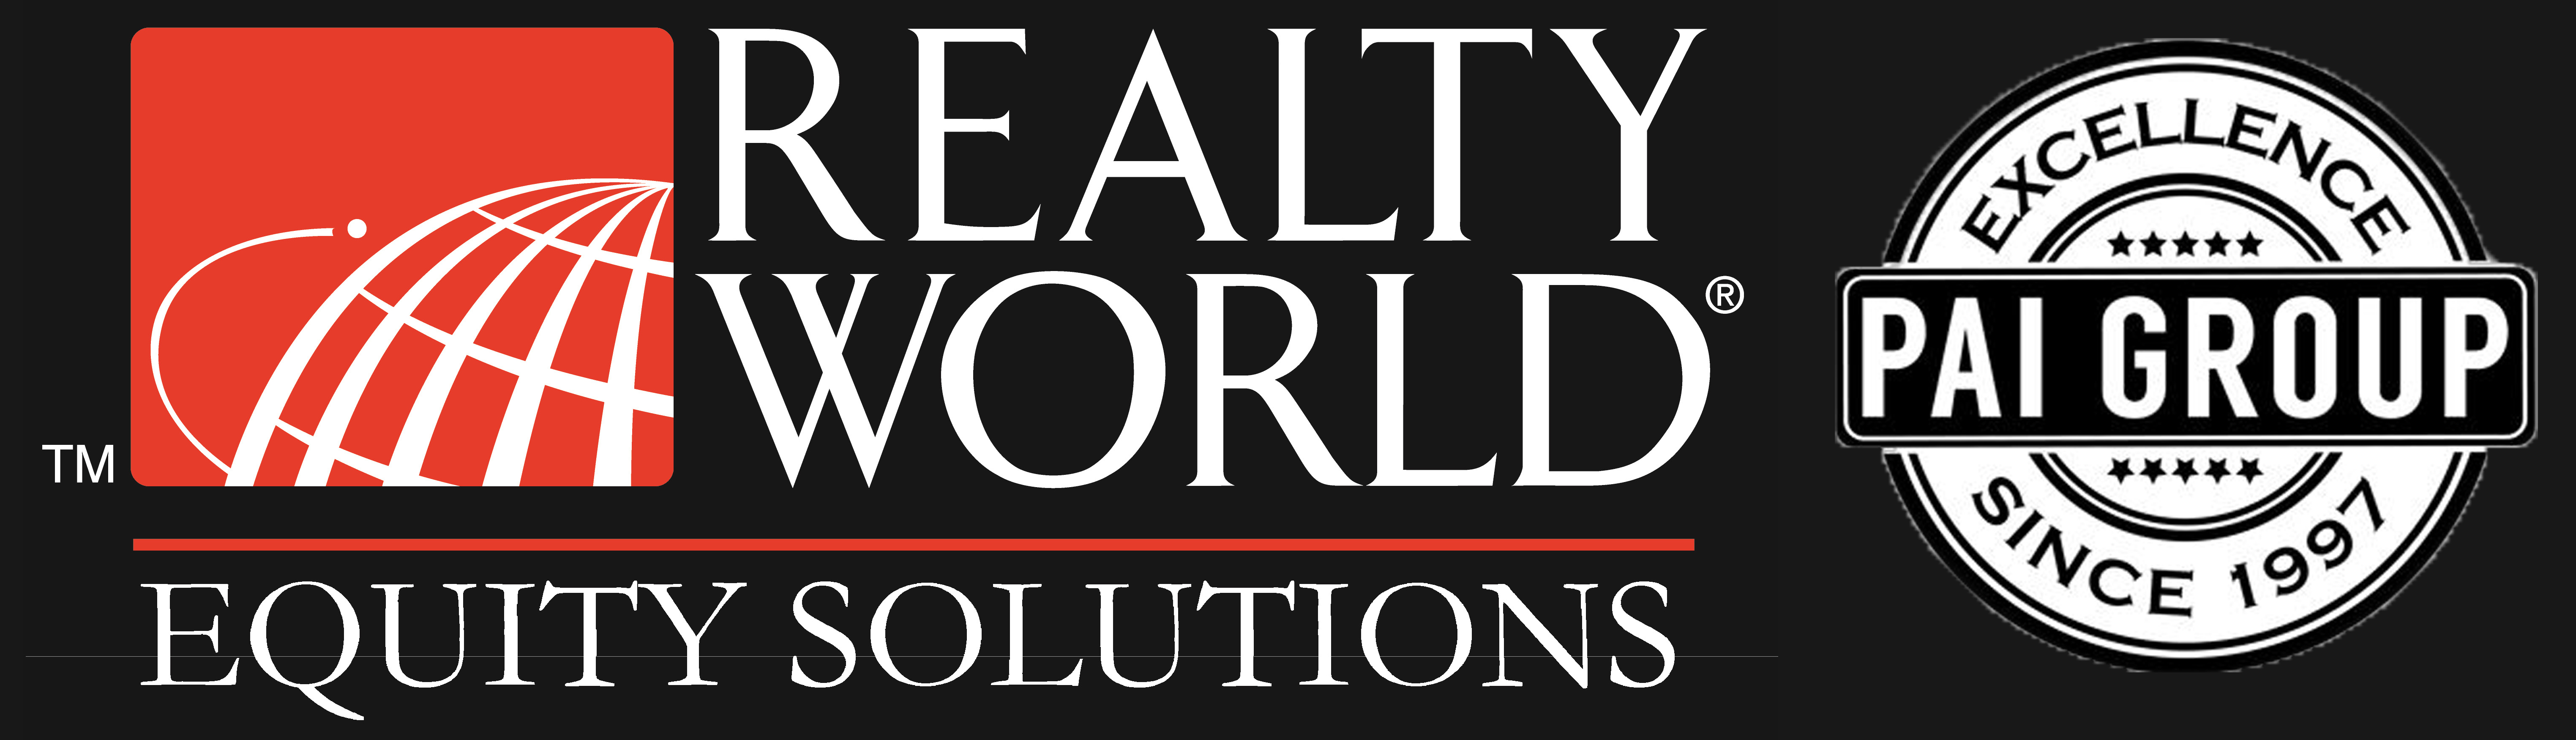 Realty World - Equity Solutions